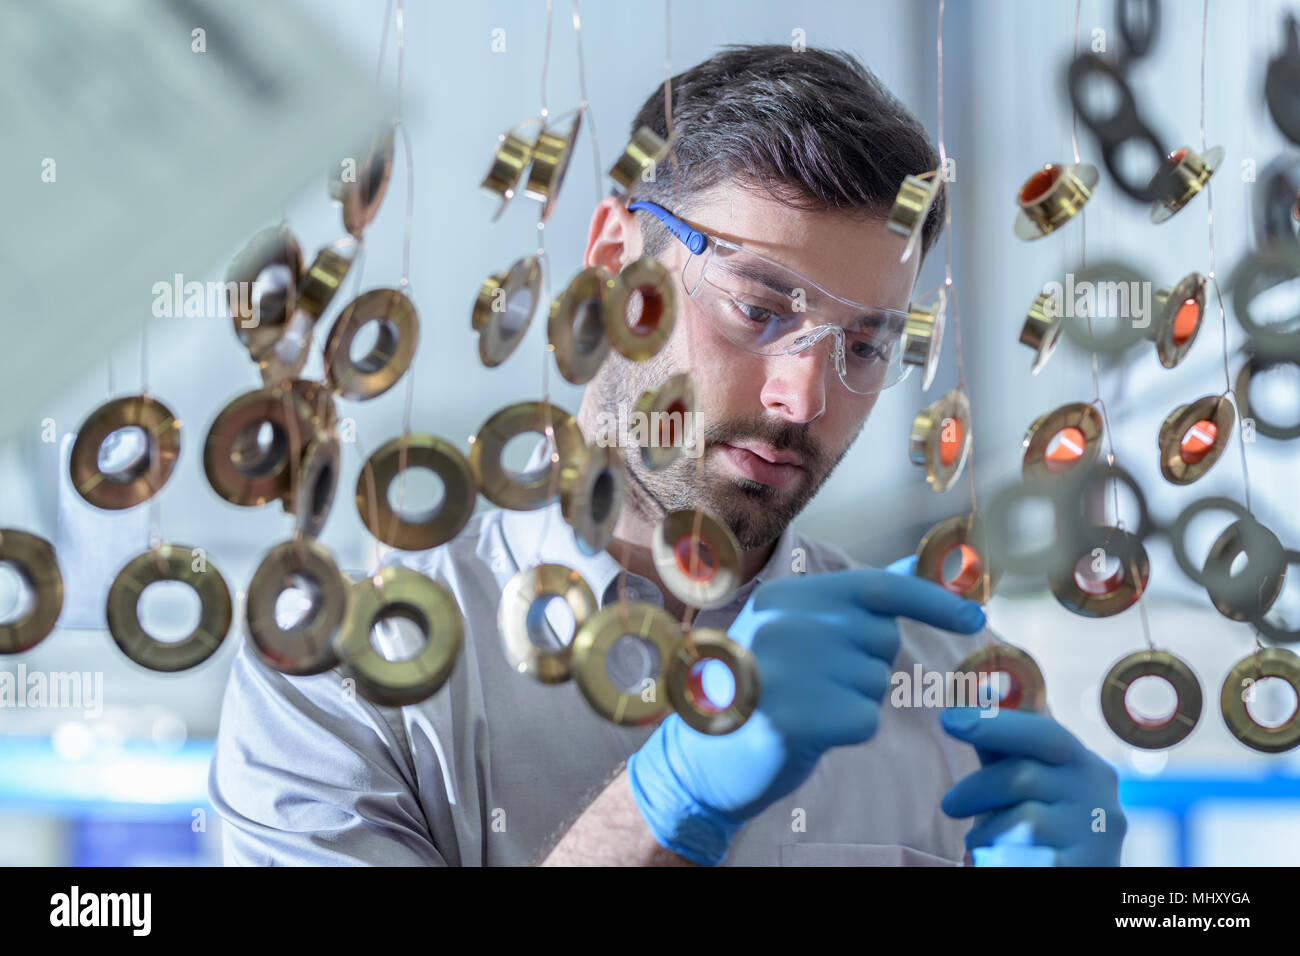 Worker hanging components ready to be dipped in chemicals in electroplating factory - Stock Image